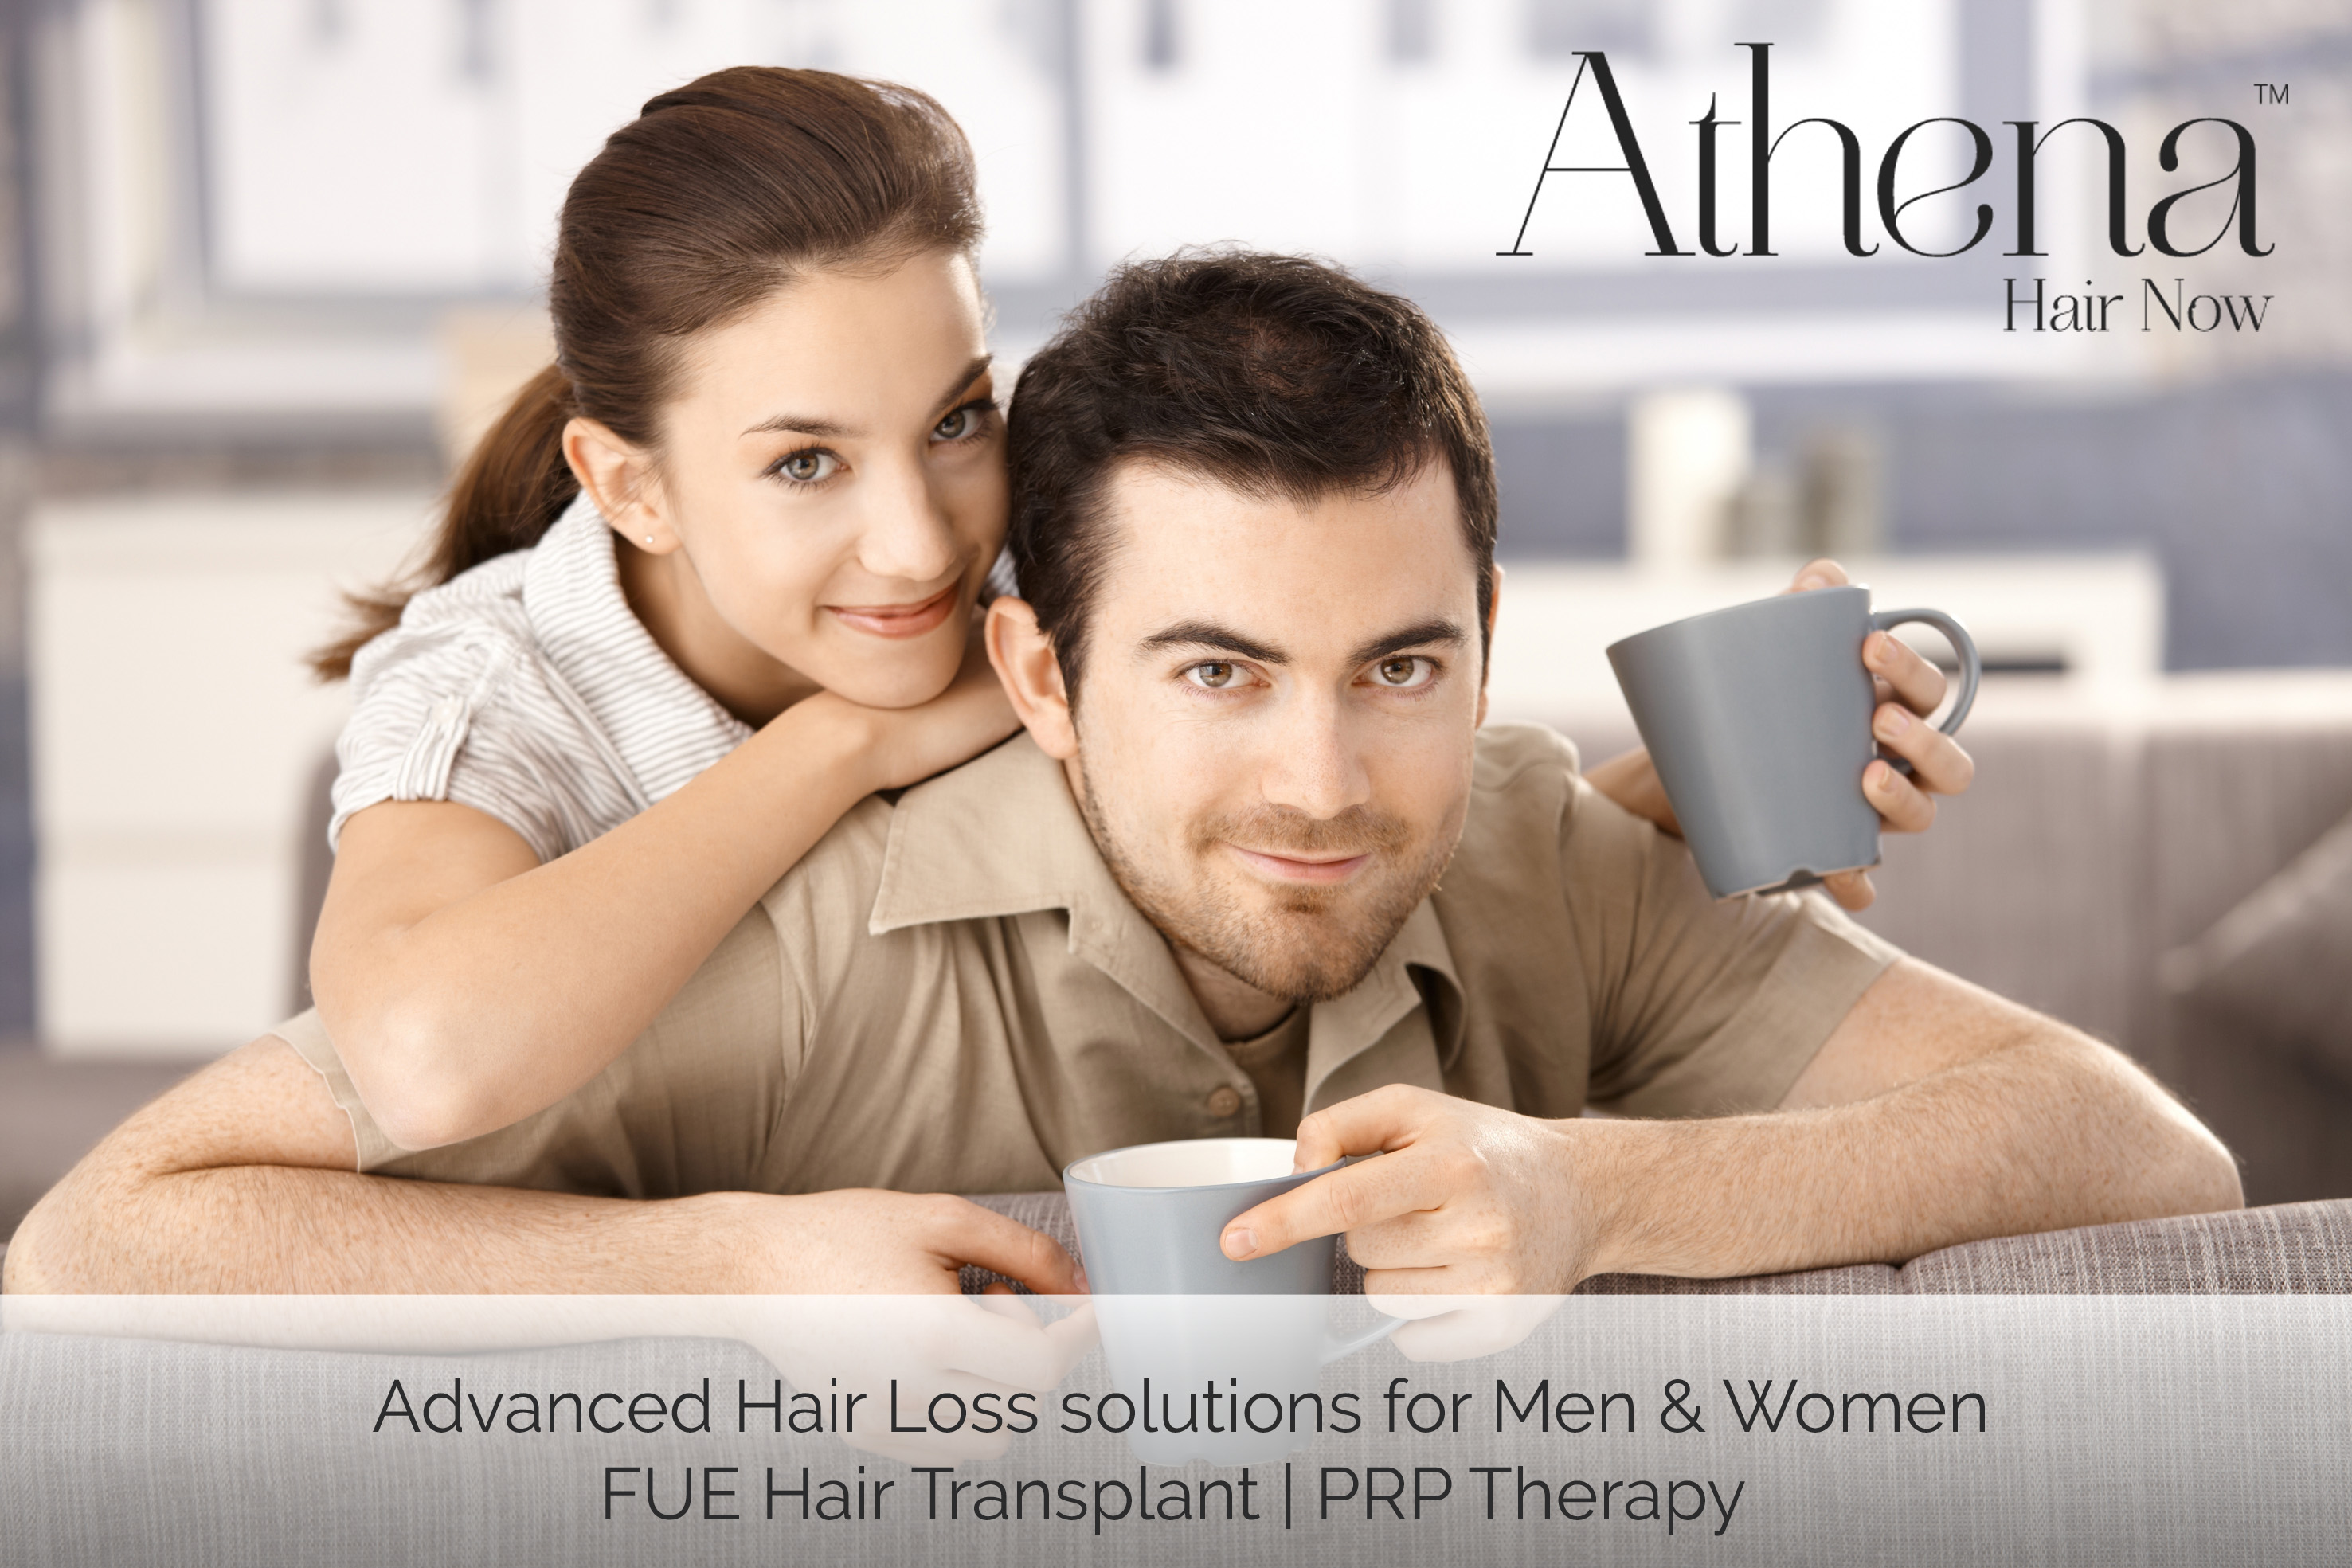 Athena Hair Now 1 - What are The Advantages Of FUE?